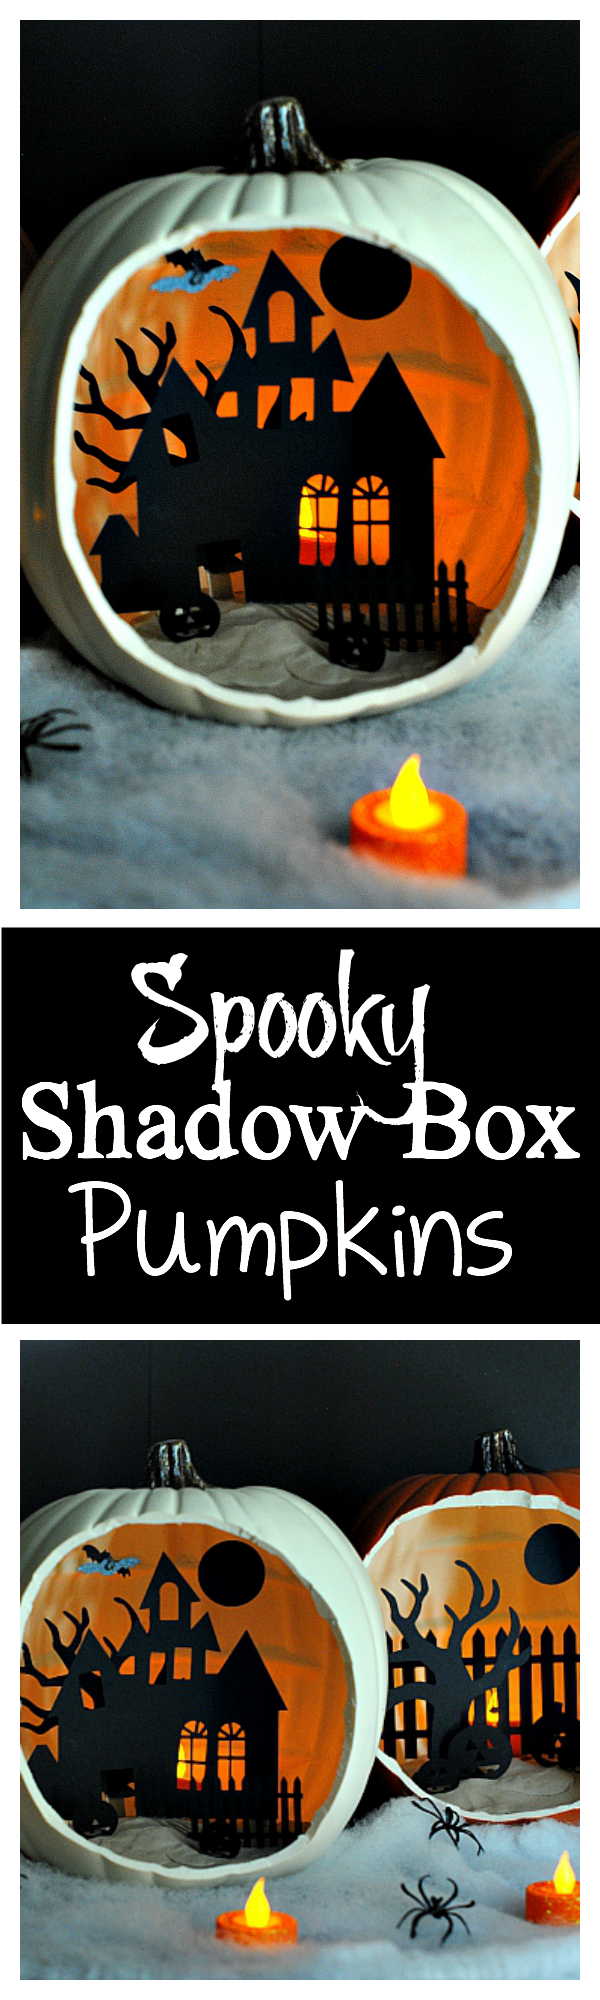 Shadow Box Pumpkins-These cute DIY Halloween decorations are easy to make and you can create several of them to decorate your house at Halloween! So cute and so fun! #Halloween #Halloweendecorations #crafts #Halloweencrafts #pumpkins